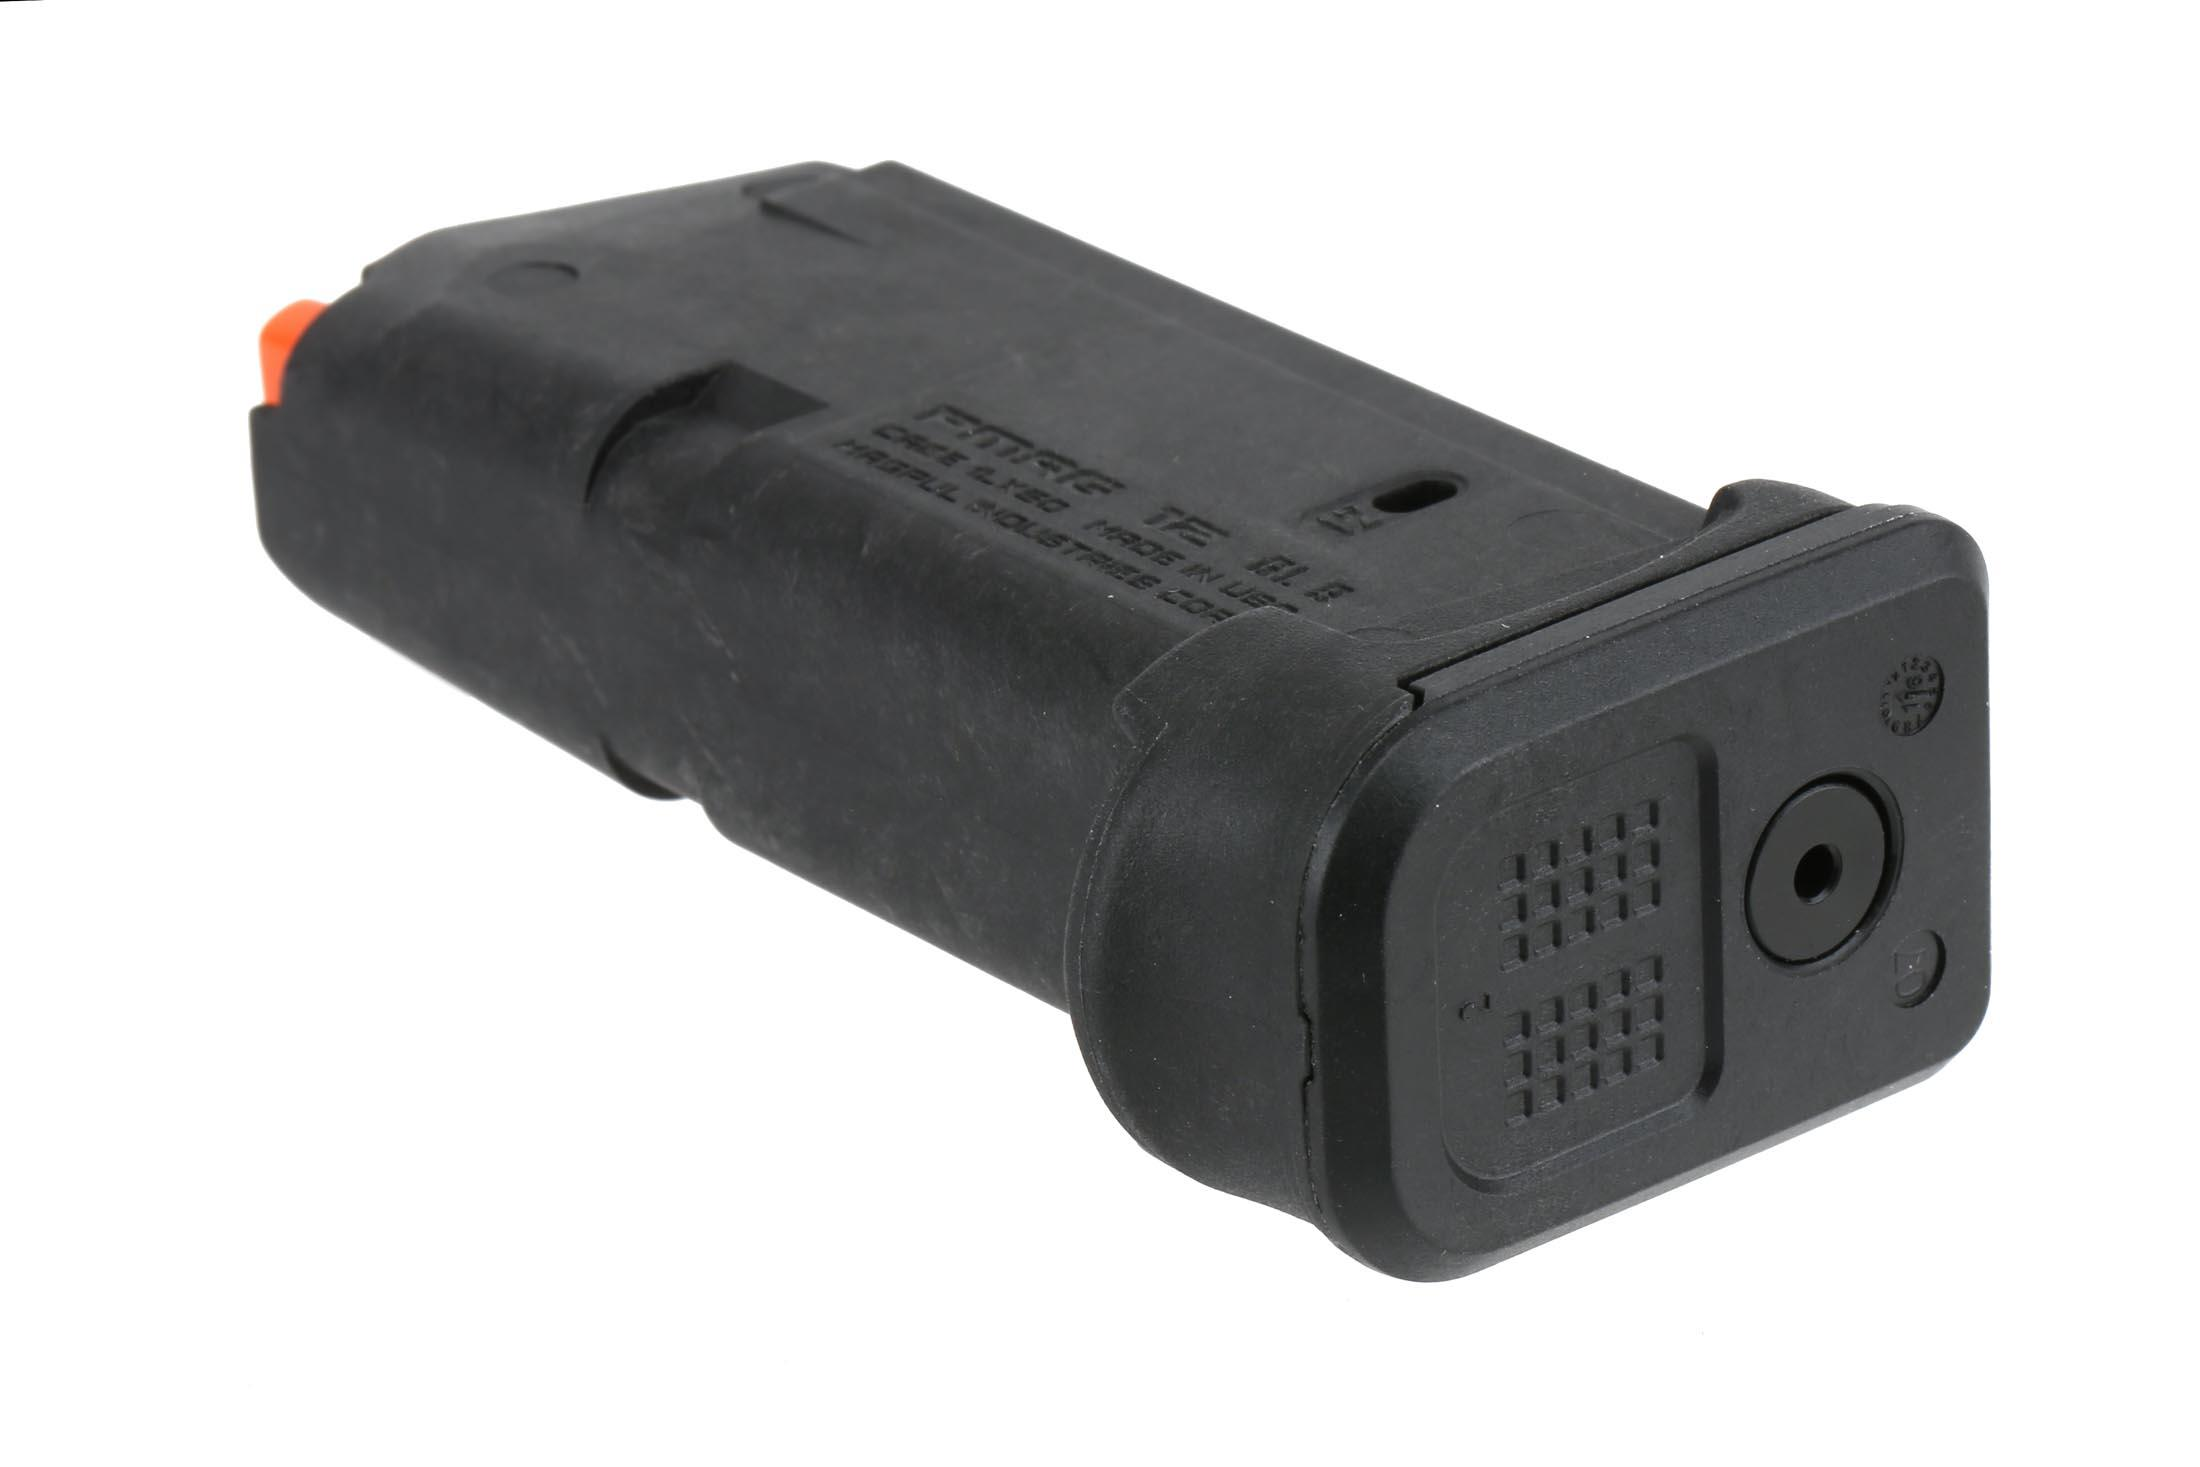 The Magpul Industries G26 12 round magazine has a paint pen dot matrix on the floor plate